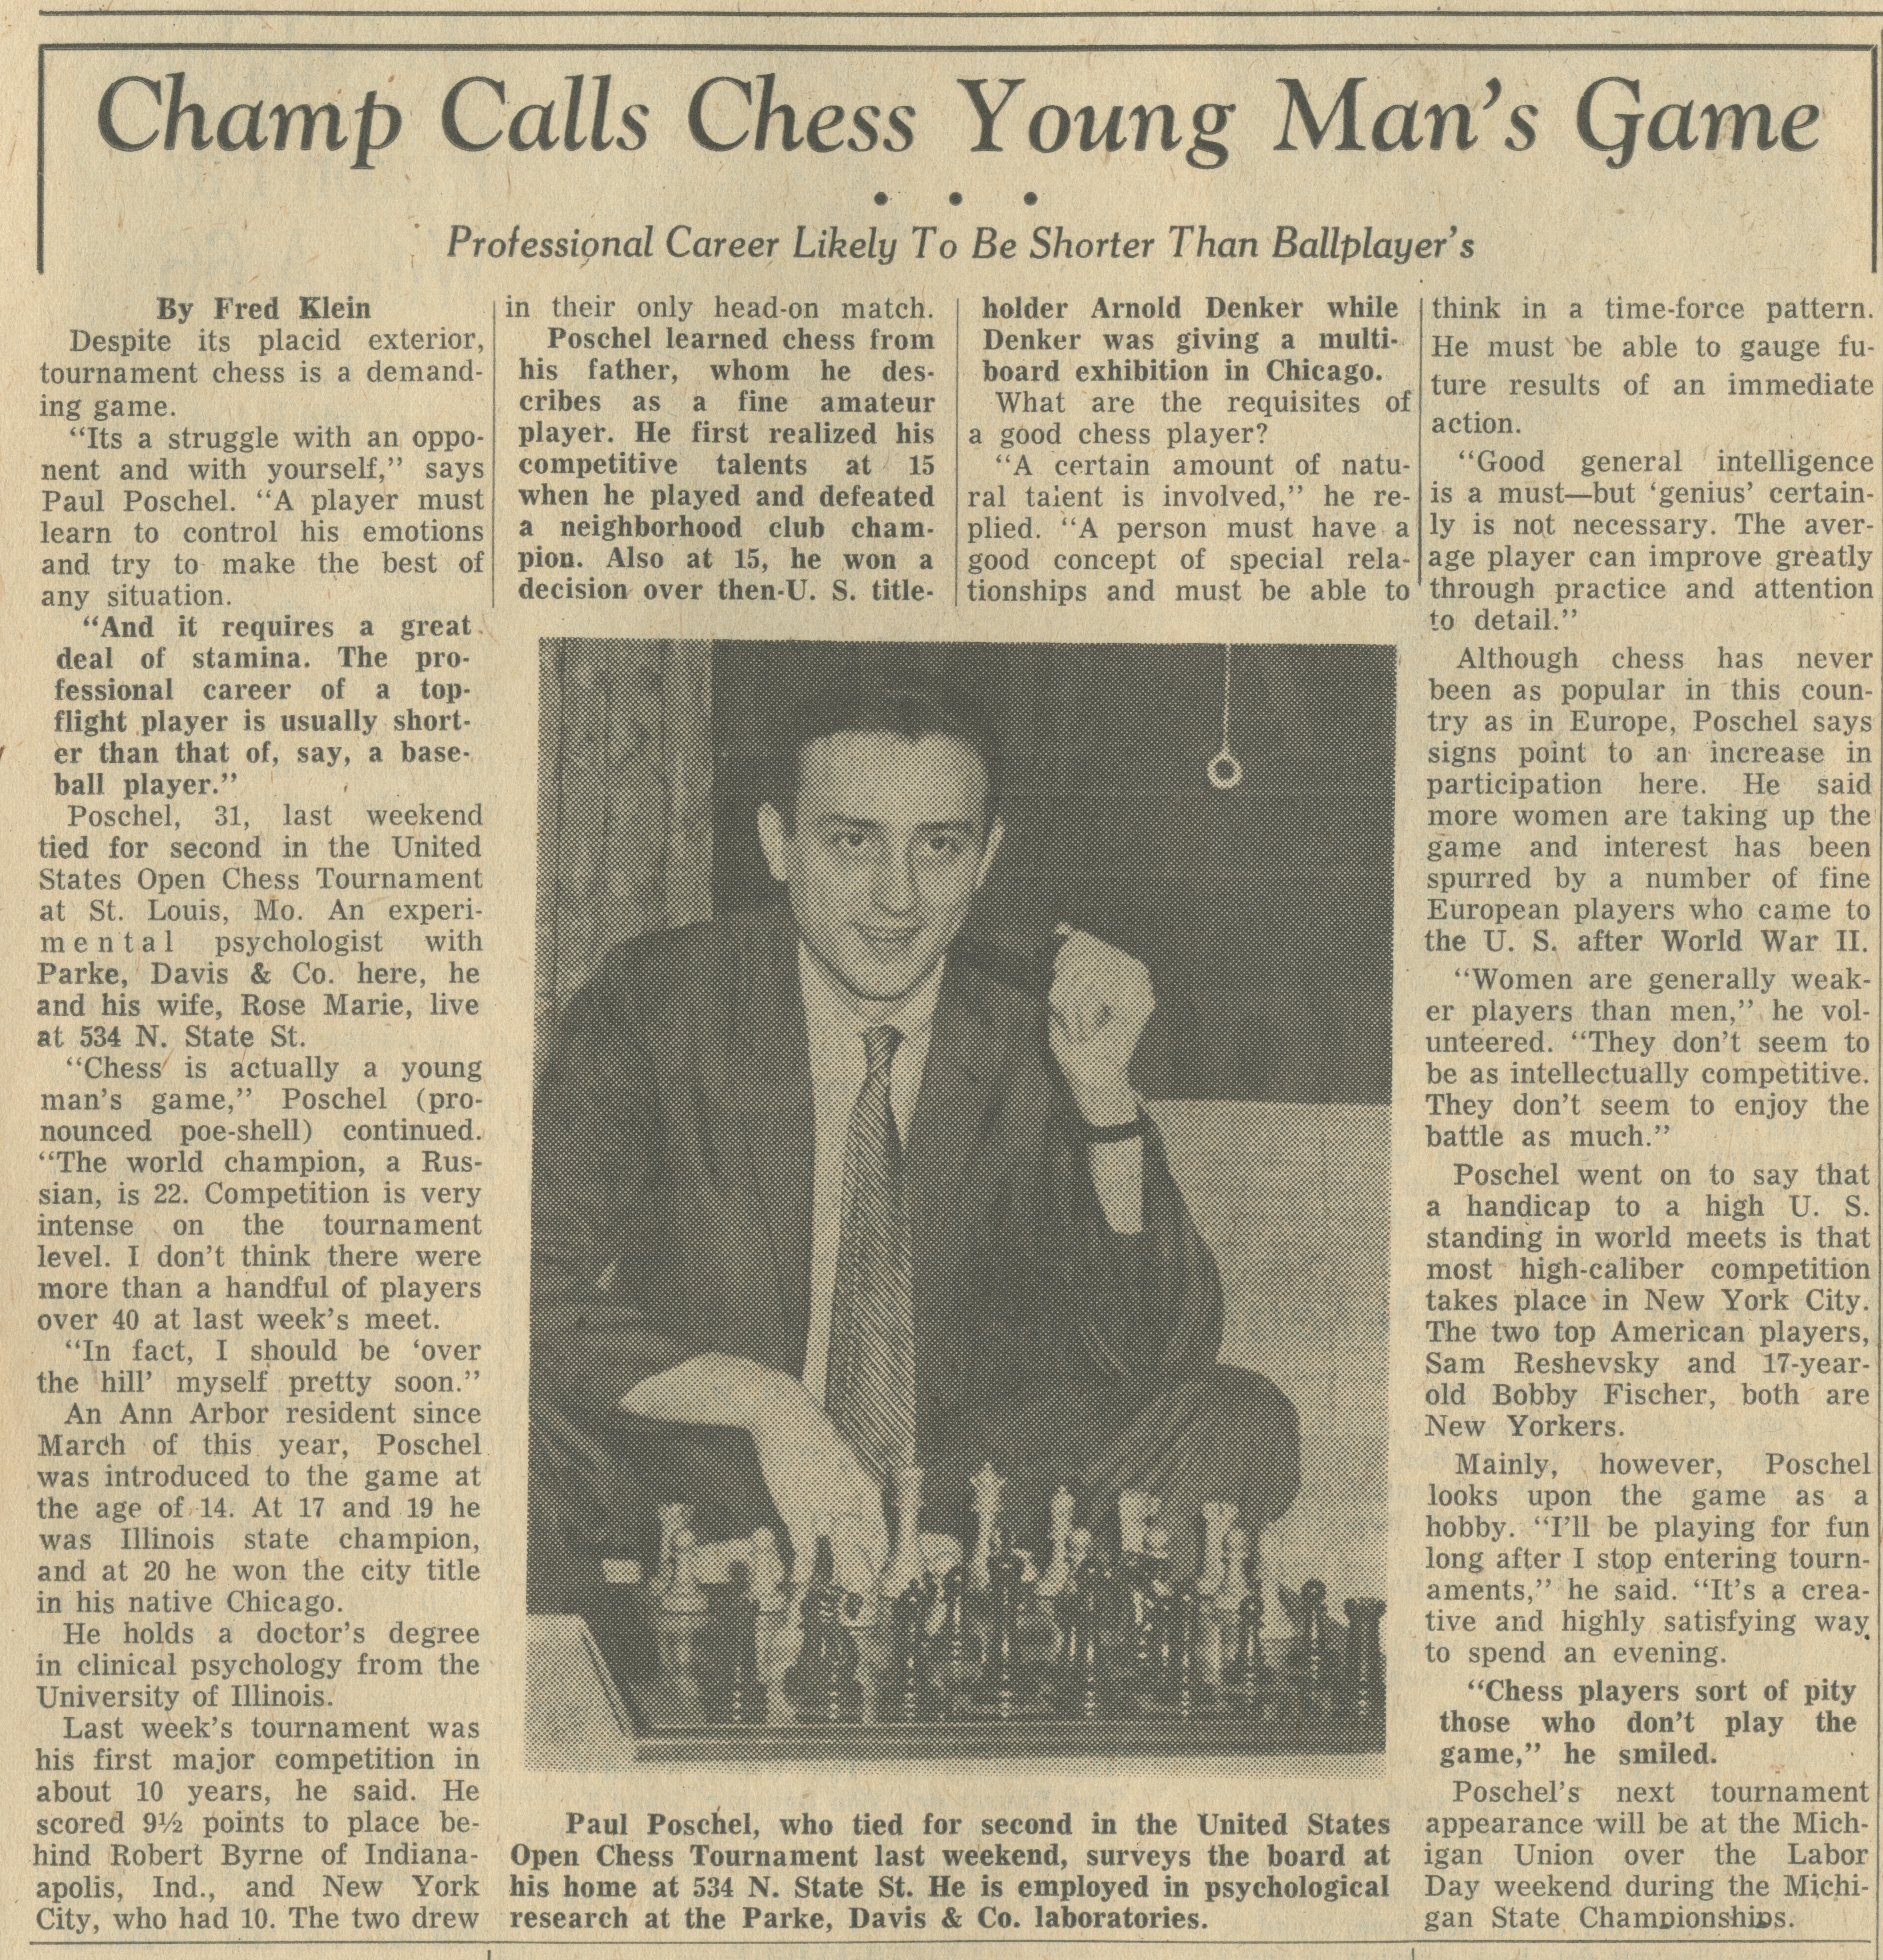 Champ Calls Chess Young Man's Game image